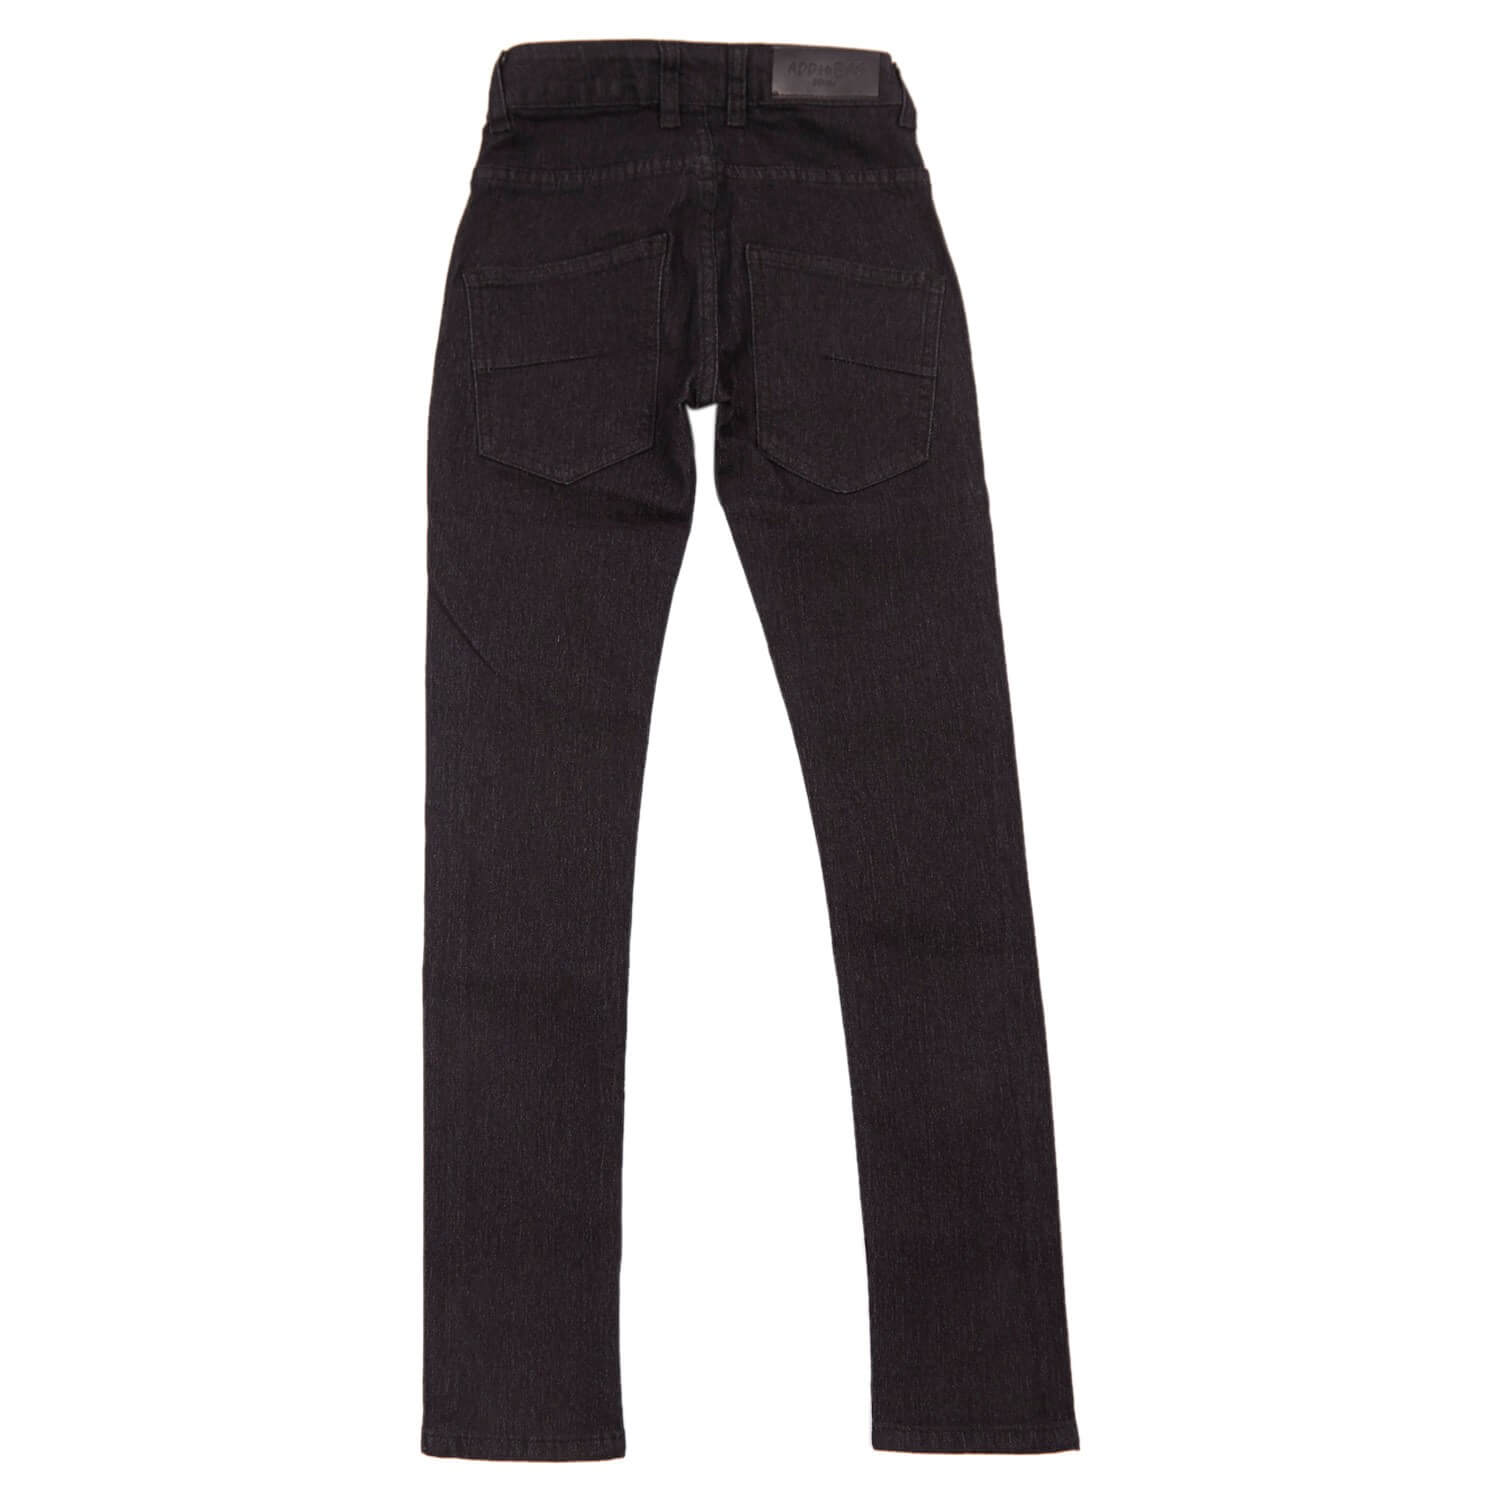 Narrow jeans i sort fra Add to Bag teen drenge bukser 4160811-833-black